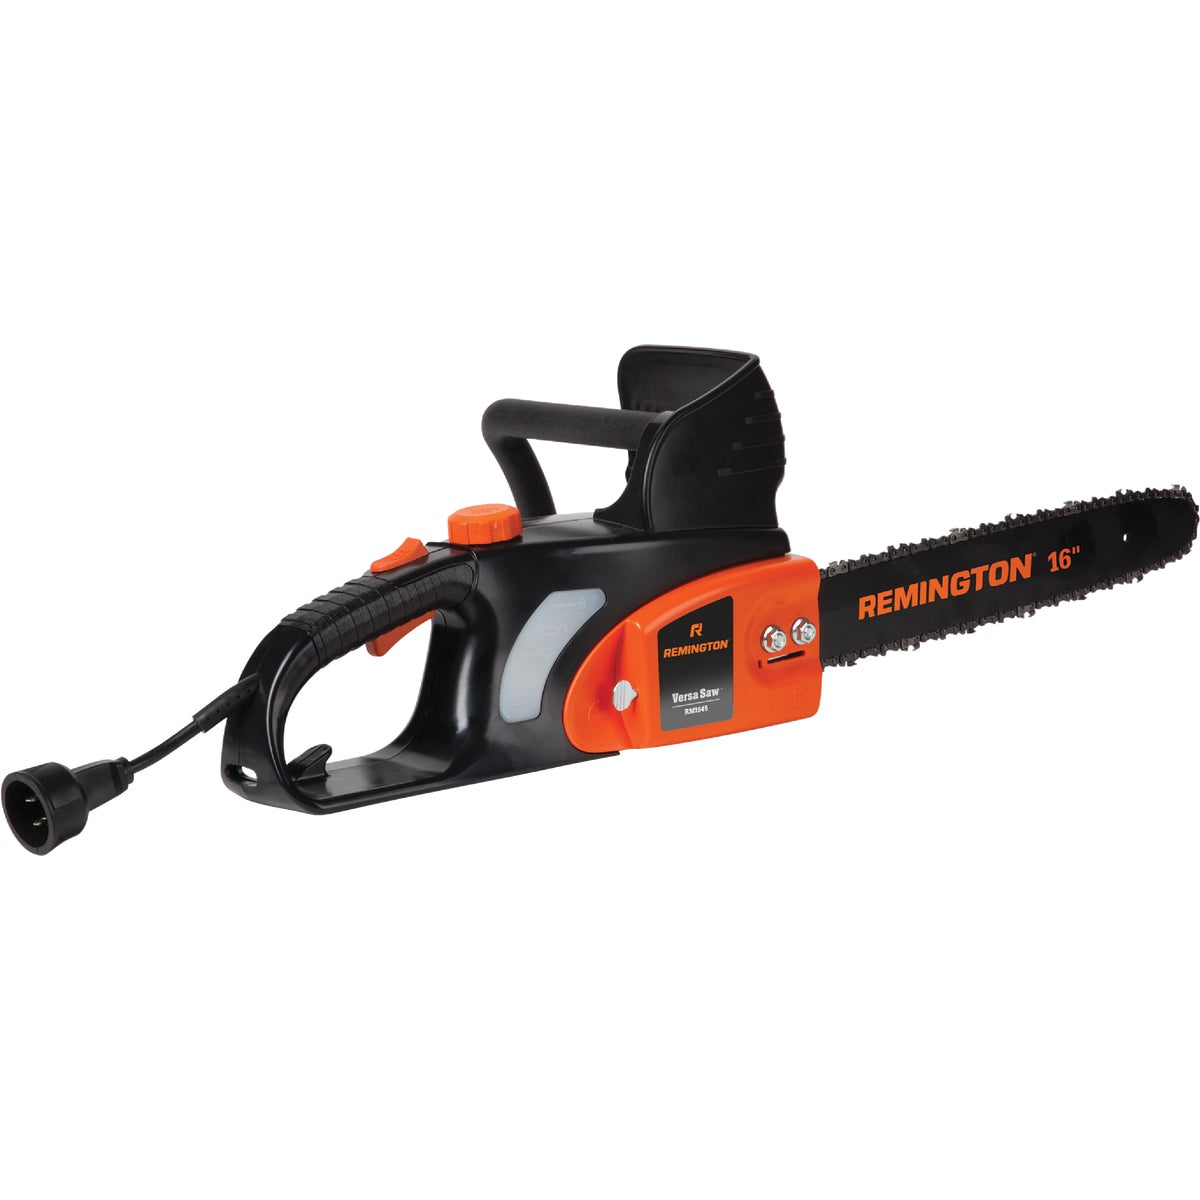 "16"" ELECTRIC CHAIN SAW"